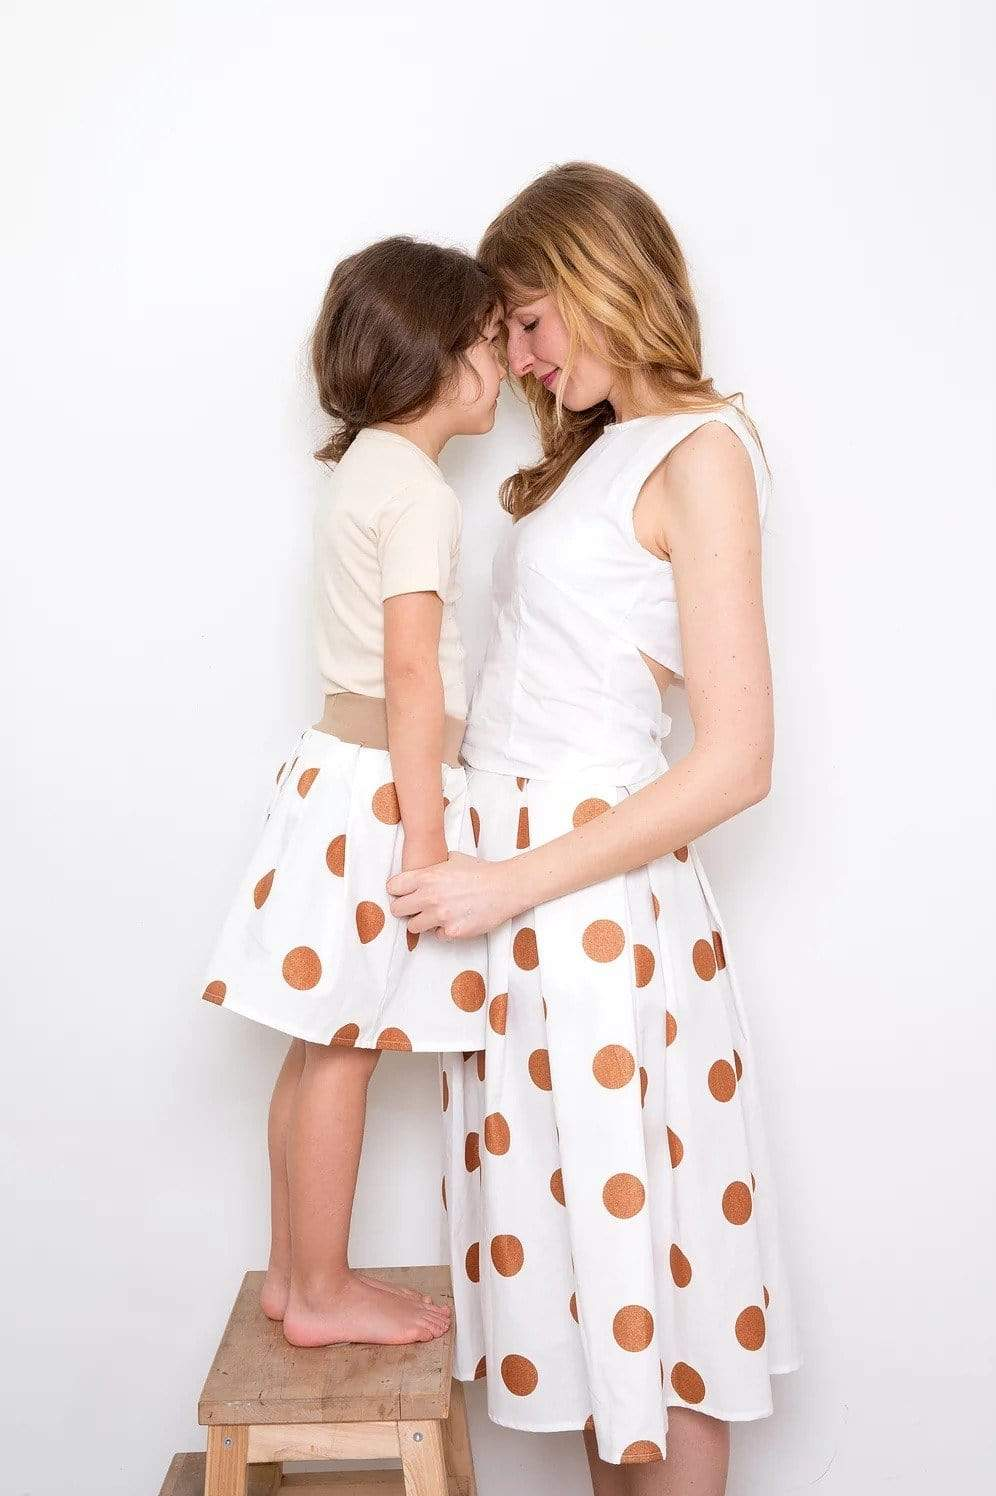 Sophia Schneider-Esleben skirt Kupfer Liebe Skirt in Organic Cotton. sustainable fashion ethical fashion